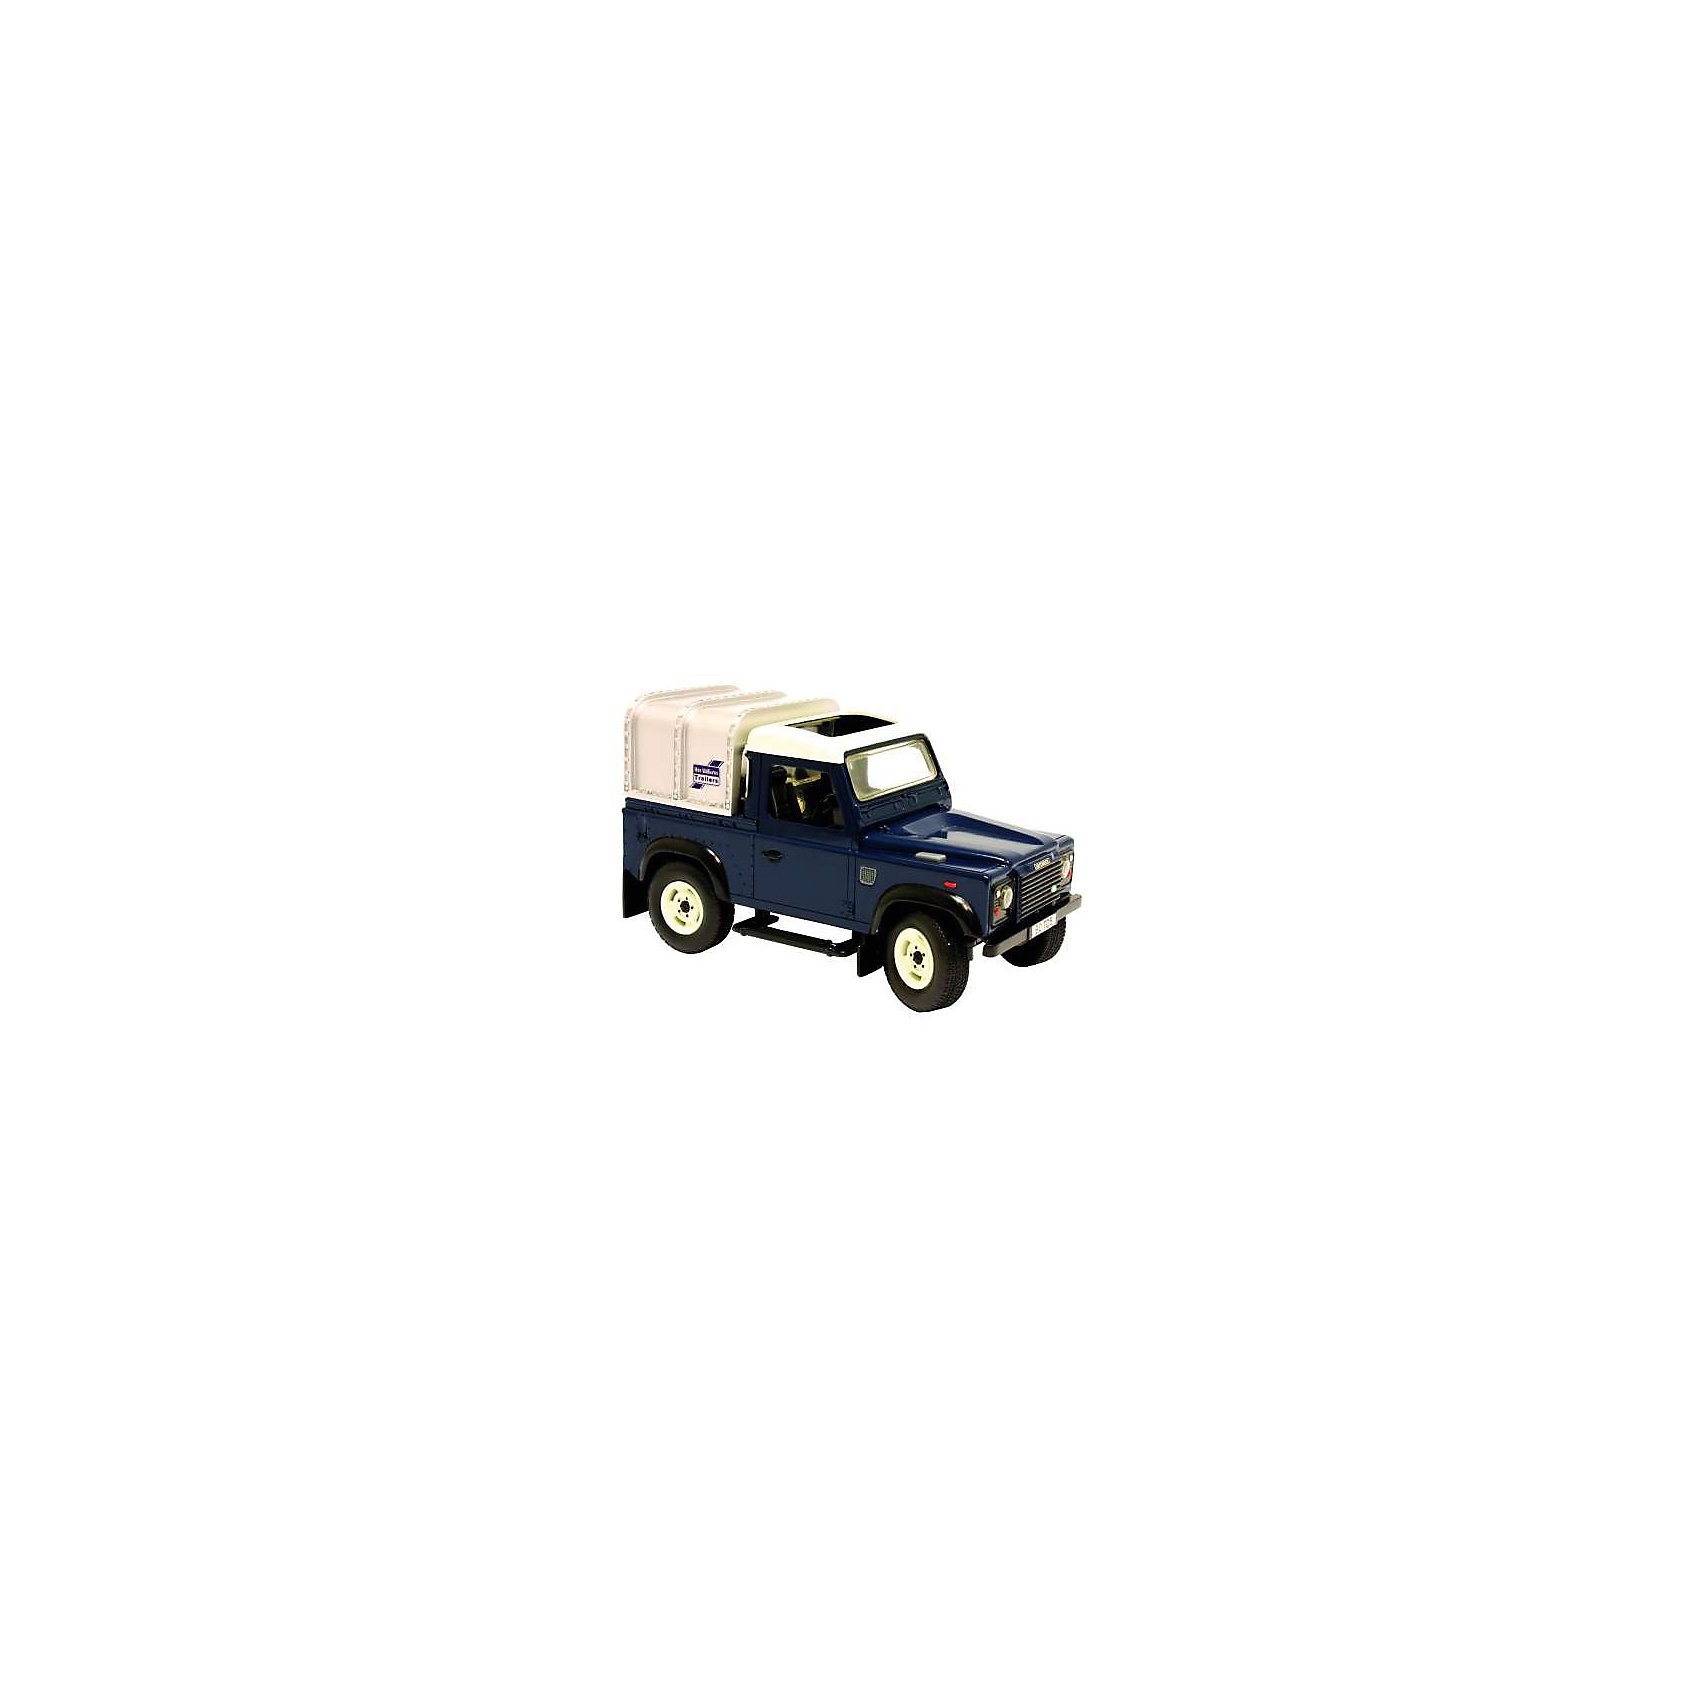 Автомобиль Land Rover Defender, свет, звук, Tomy Britains Big Farm